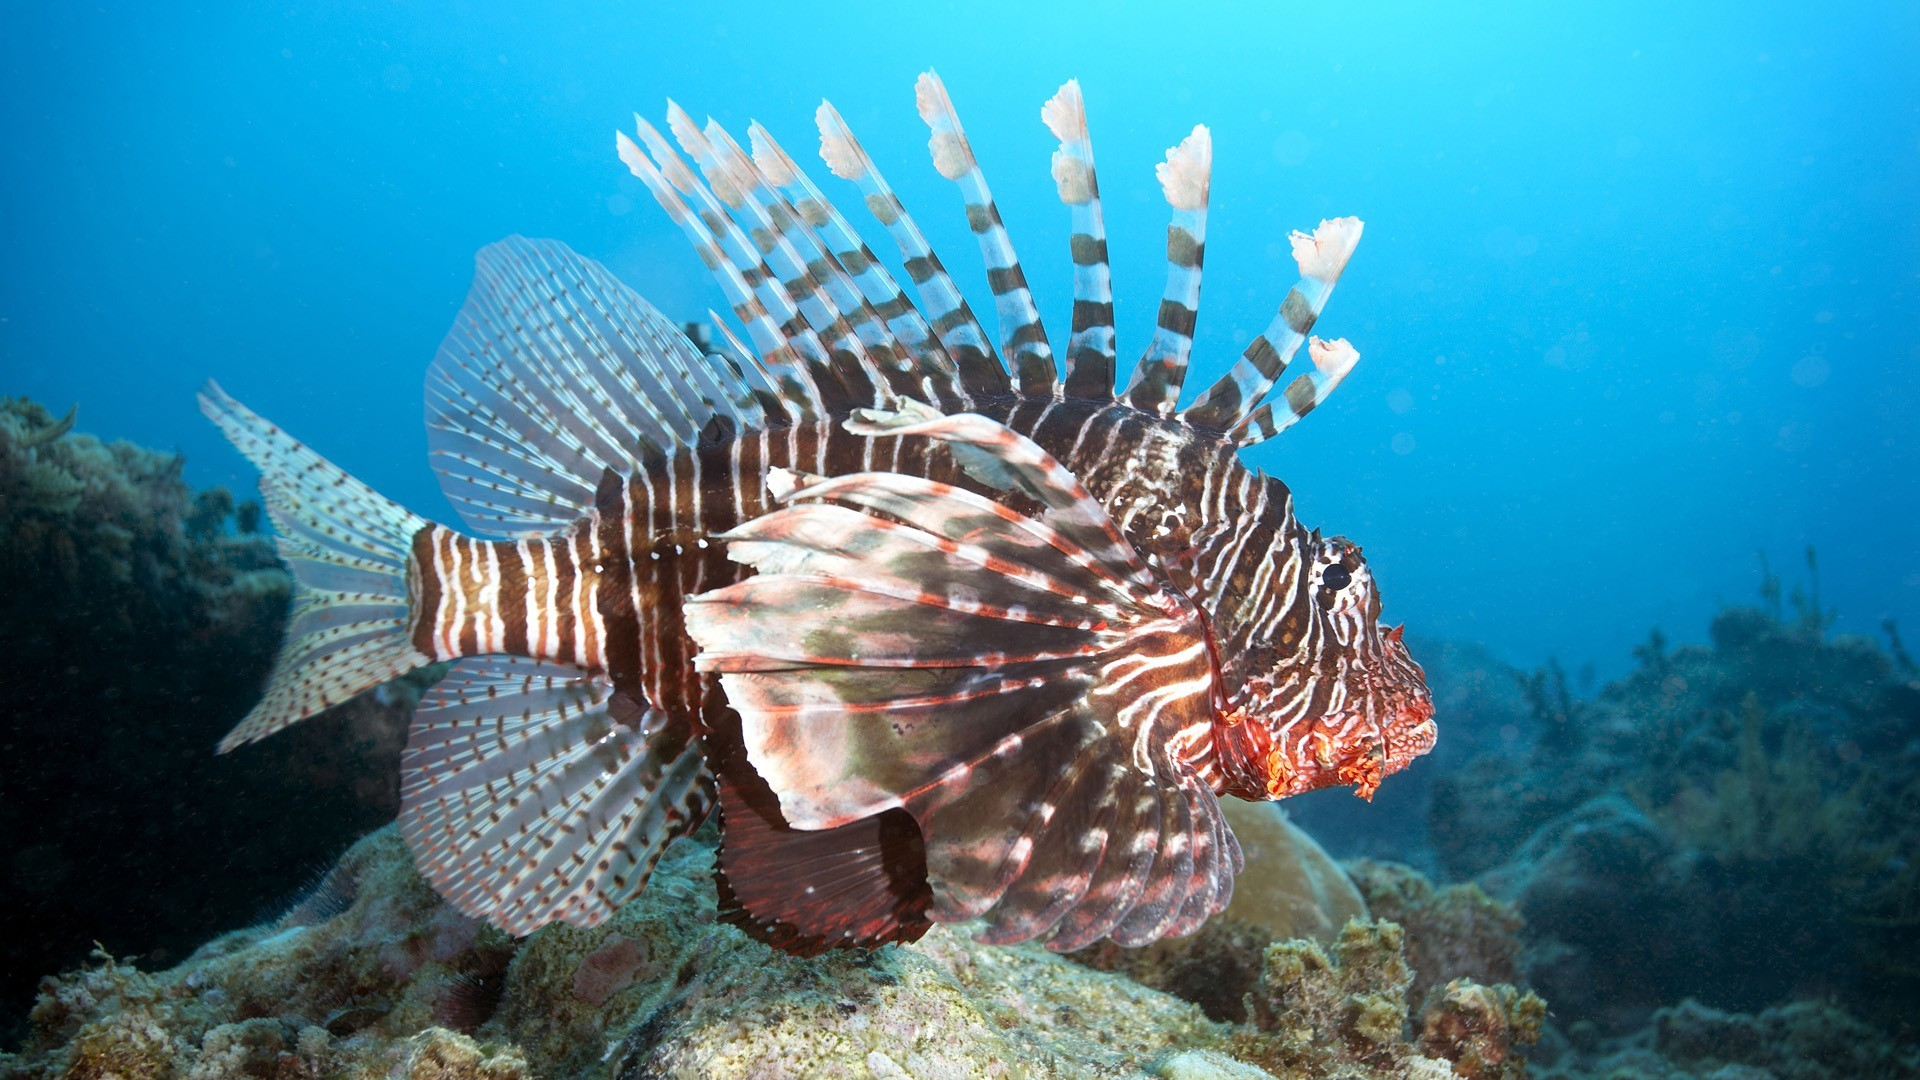 fish lionfish underwater HD Wallpaper